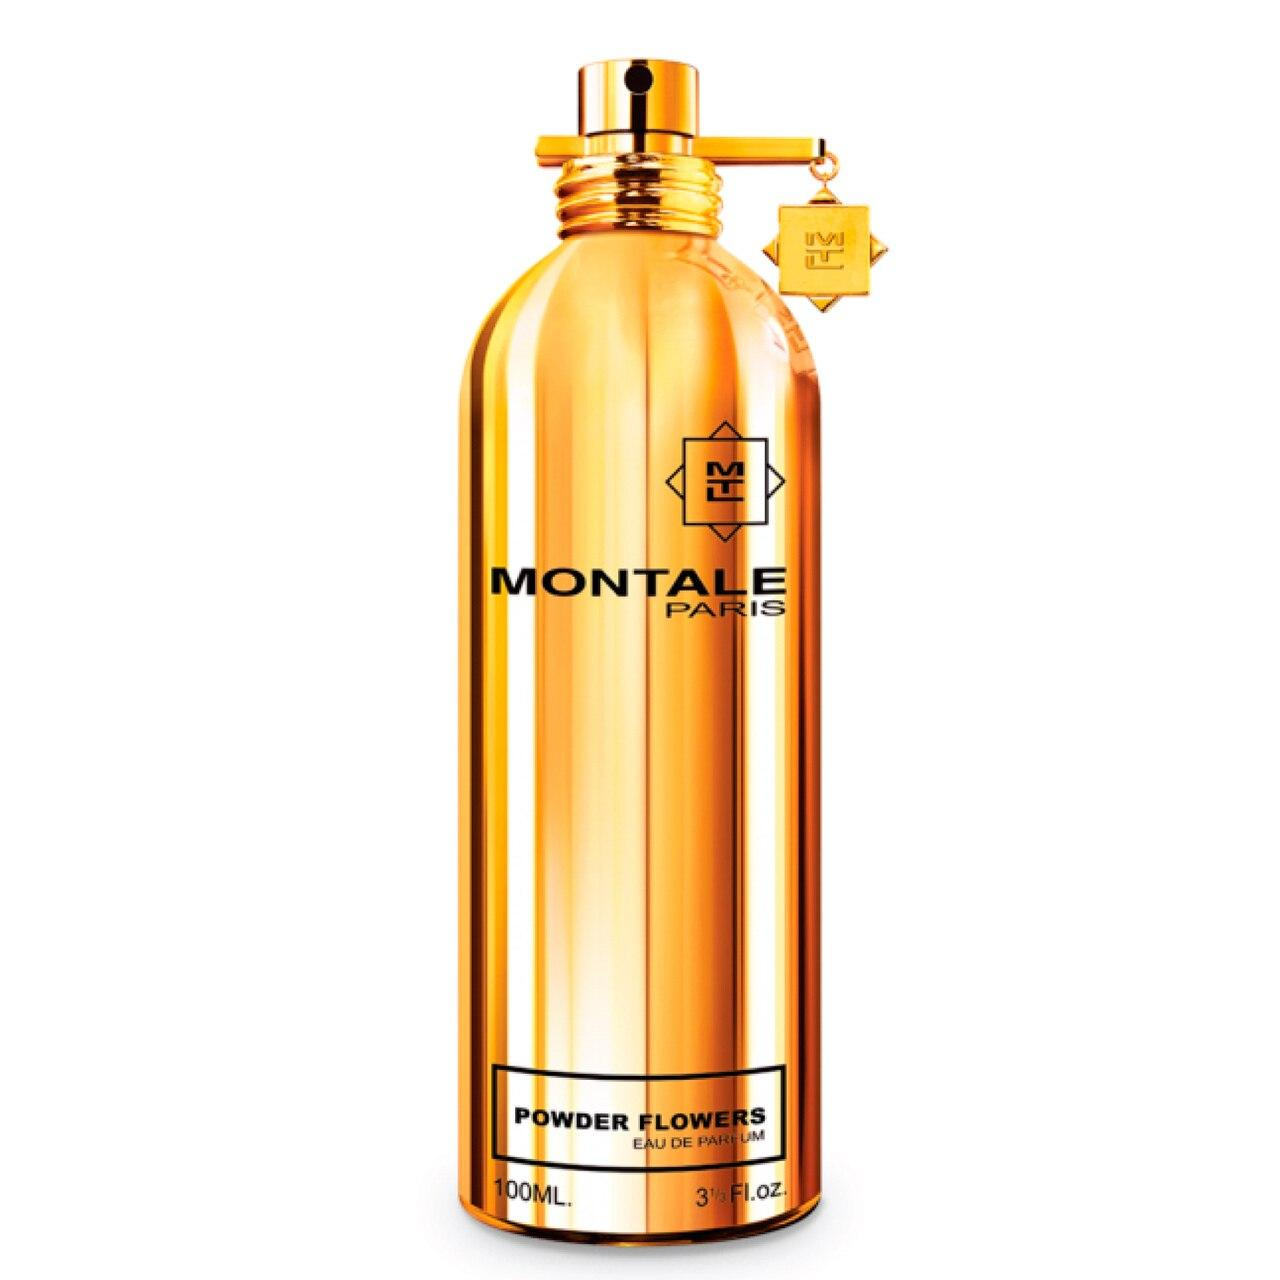 Montale Powder Flowers For Unisex Eau De Parfum 100ML